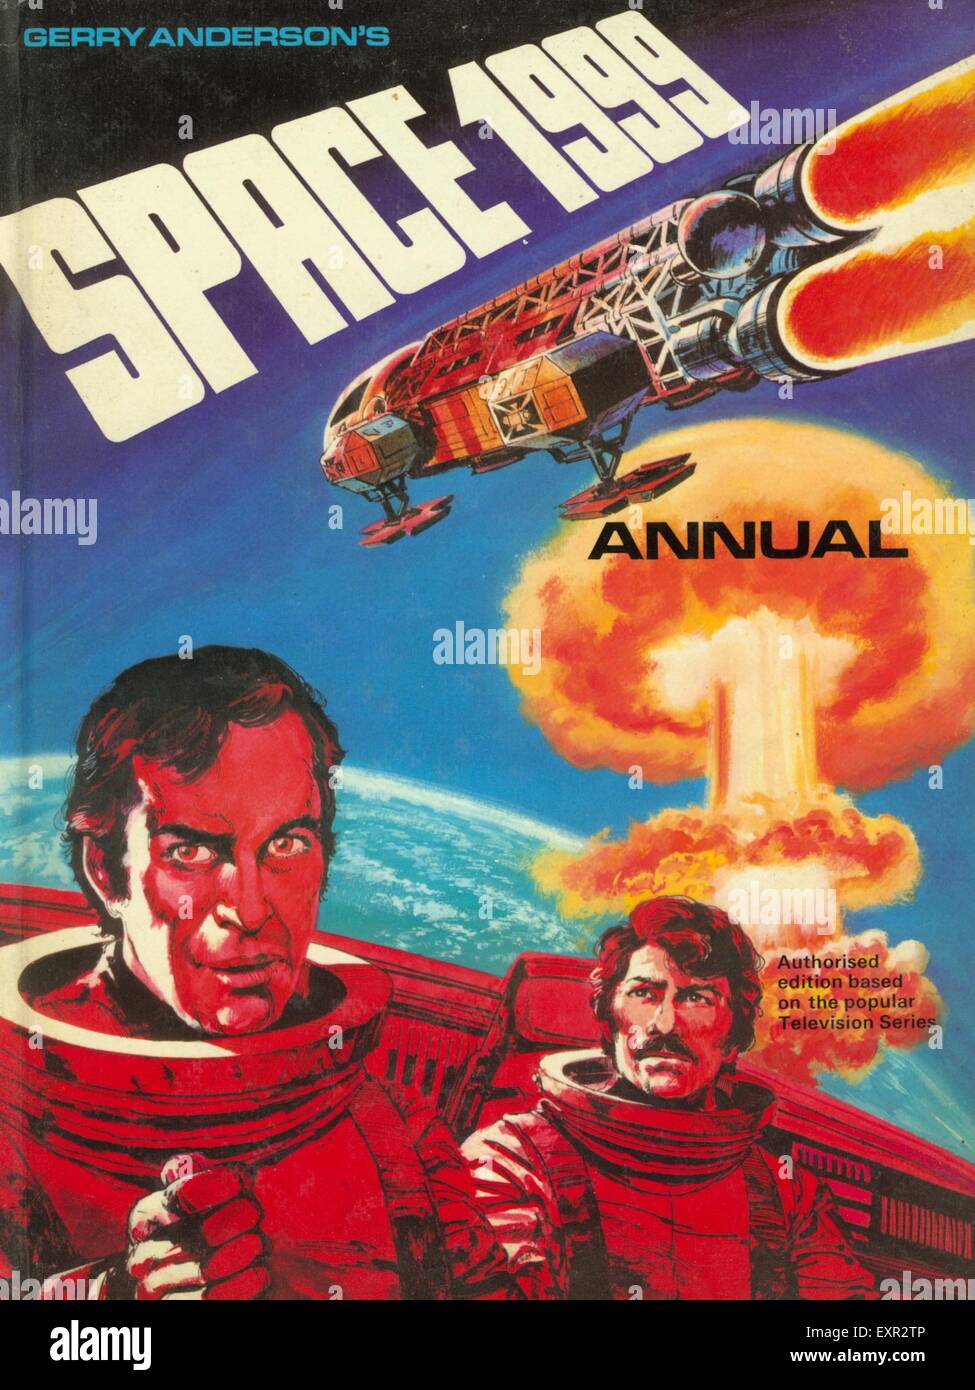 1970s UK Space 1999 Comic/ Annual Cover - Stock Image